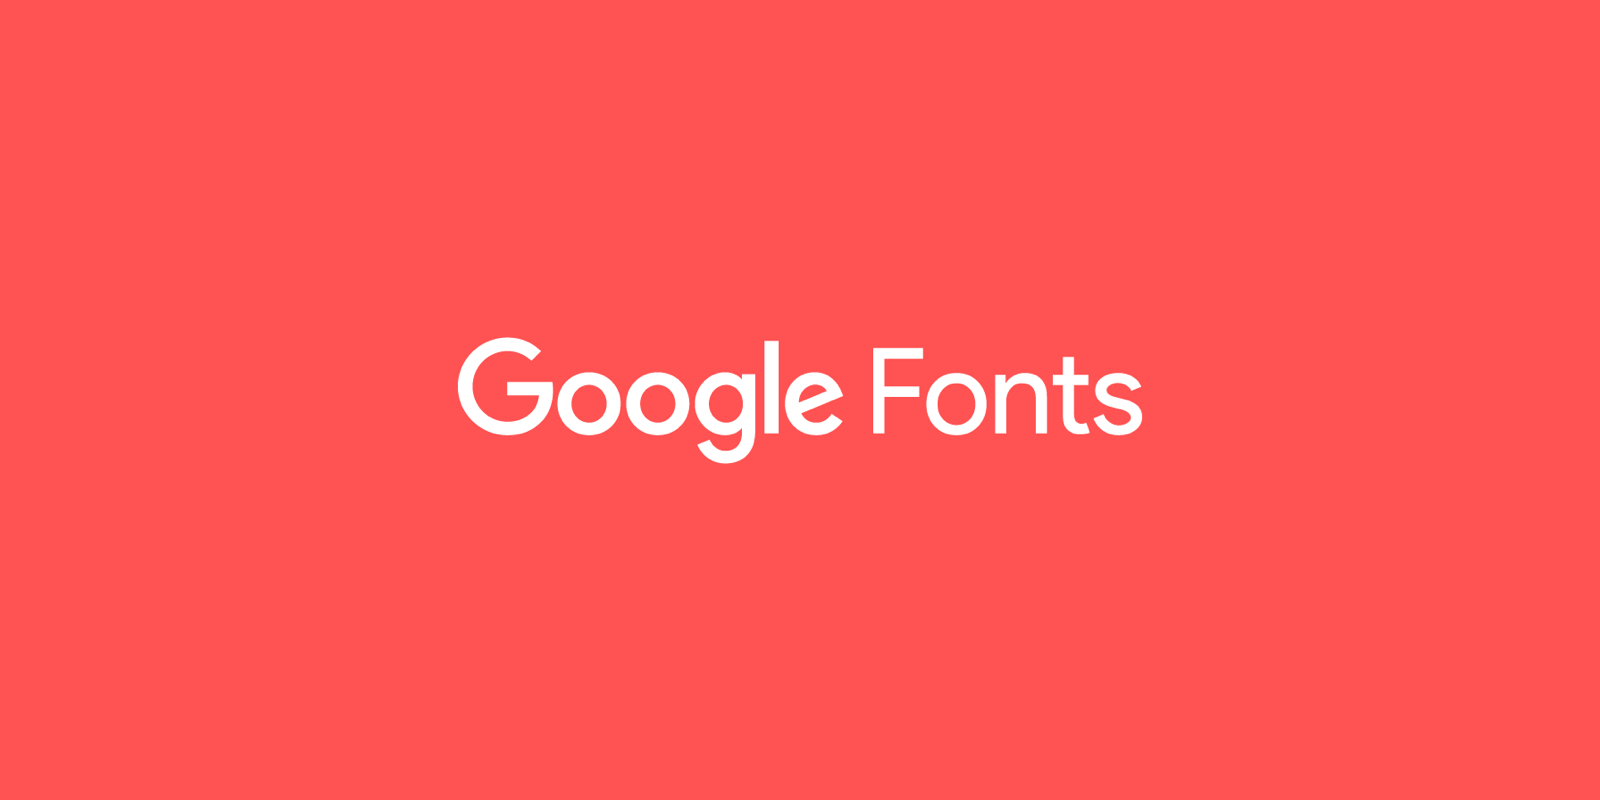 So you've probably heard that Google has hundreds of free web fonts ready to be used for your next project. But how do you use them on your website? This article will walk you through the steps to take in order to get them running on your website. It should take less than 10 minutes!